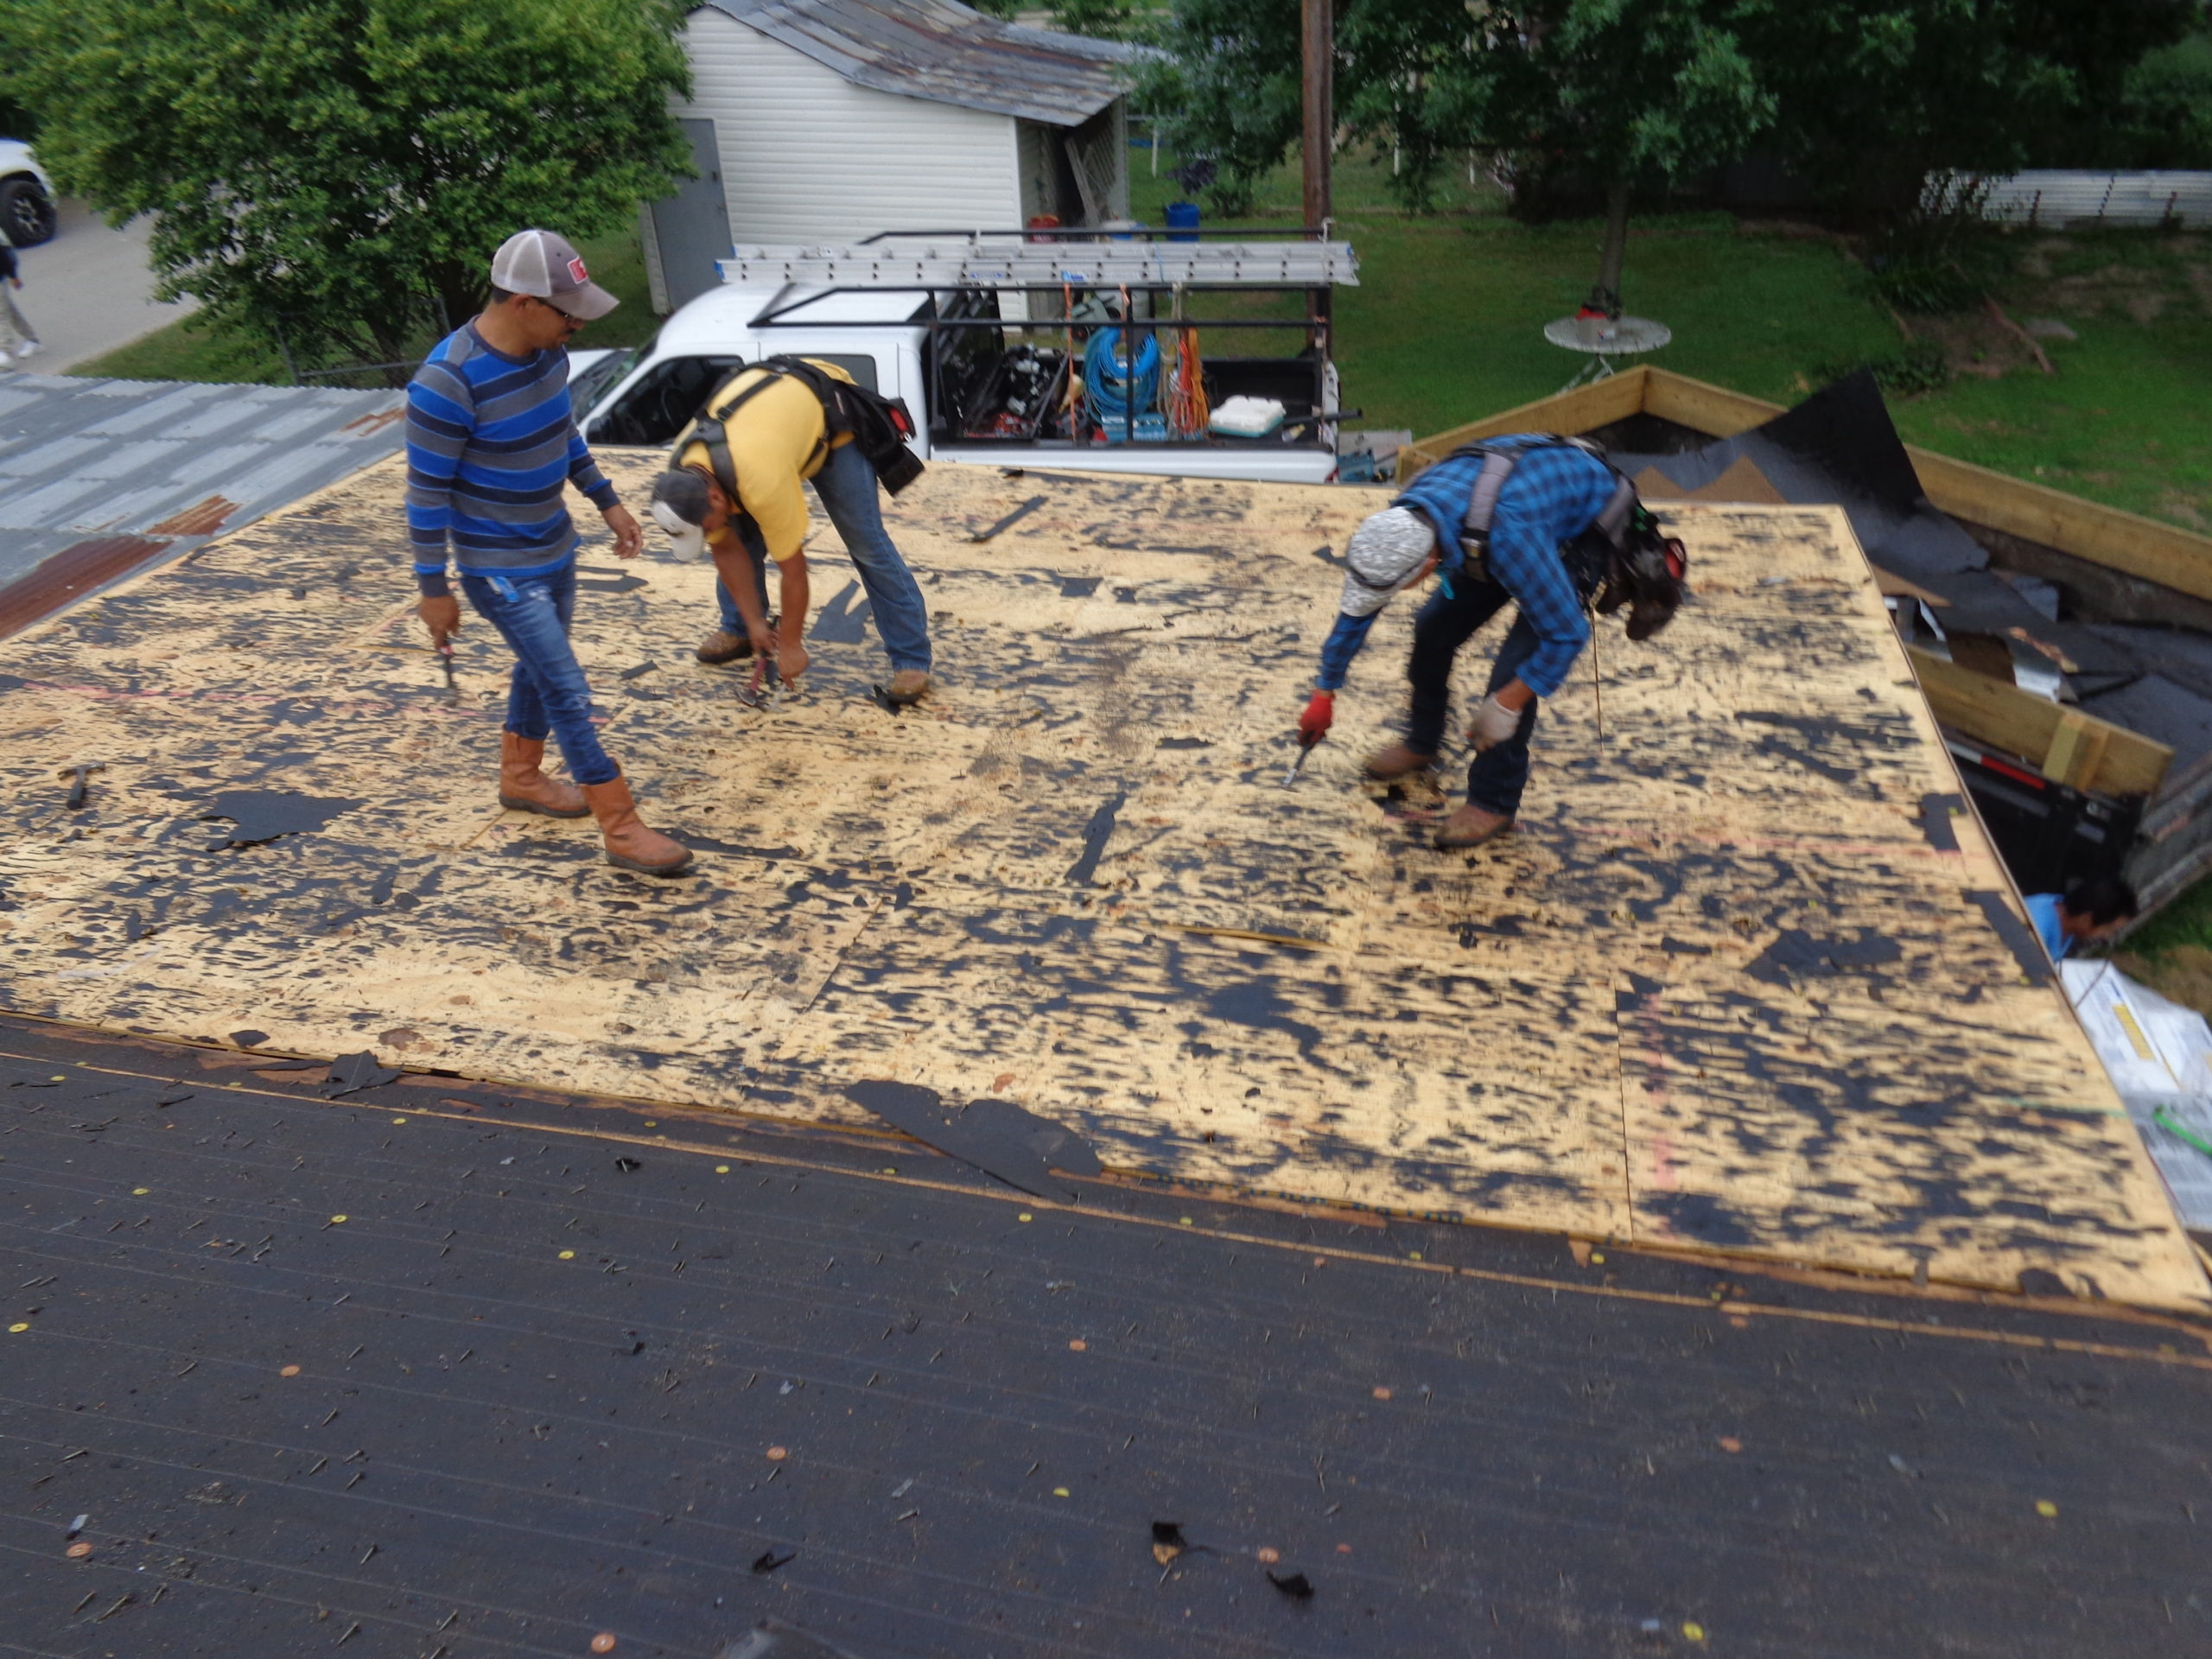 Best Roofing Waco - Residential Roofing